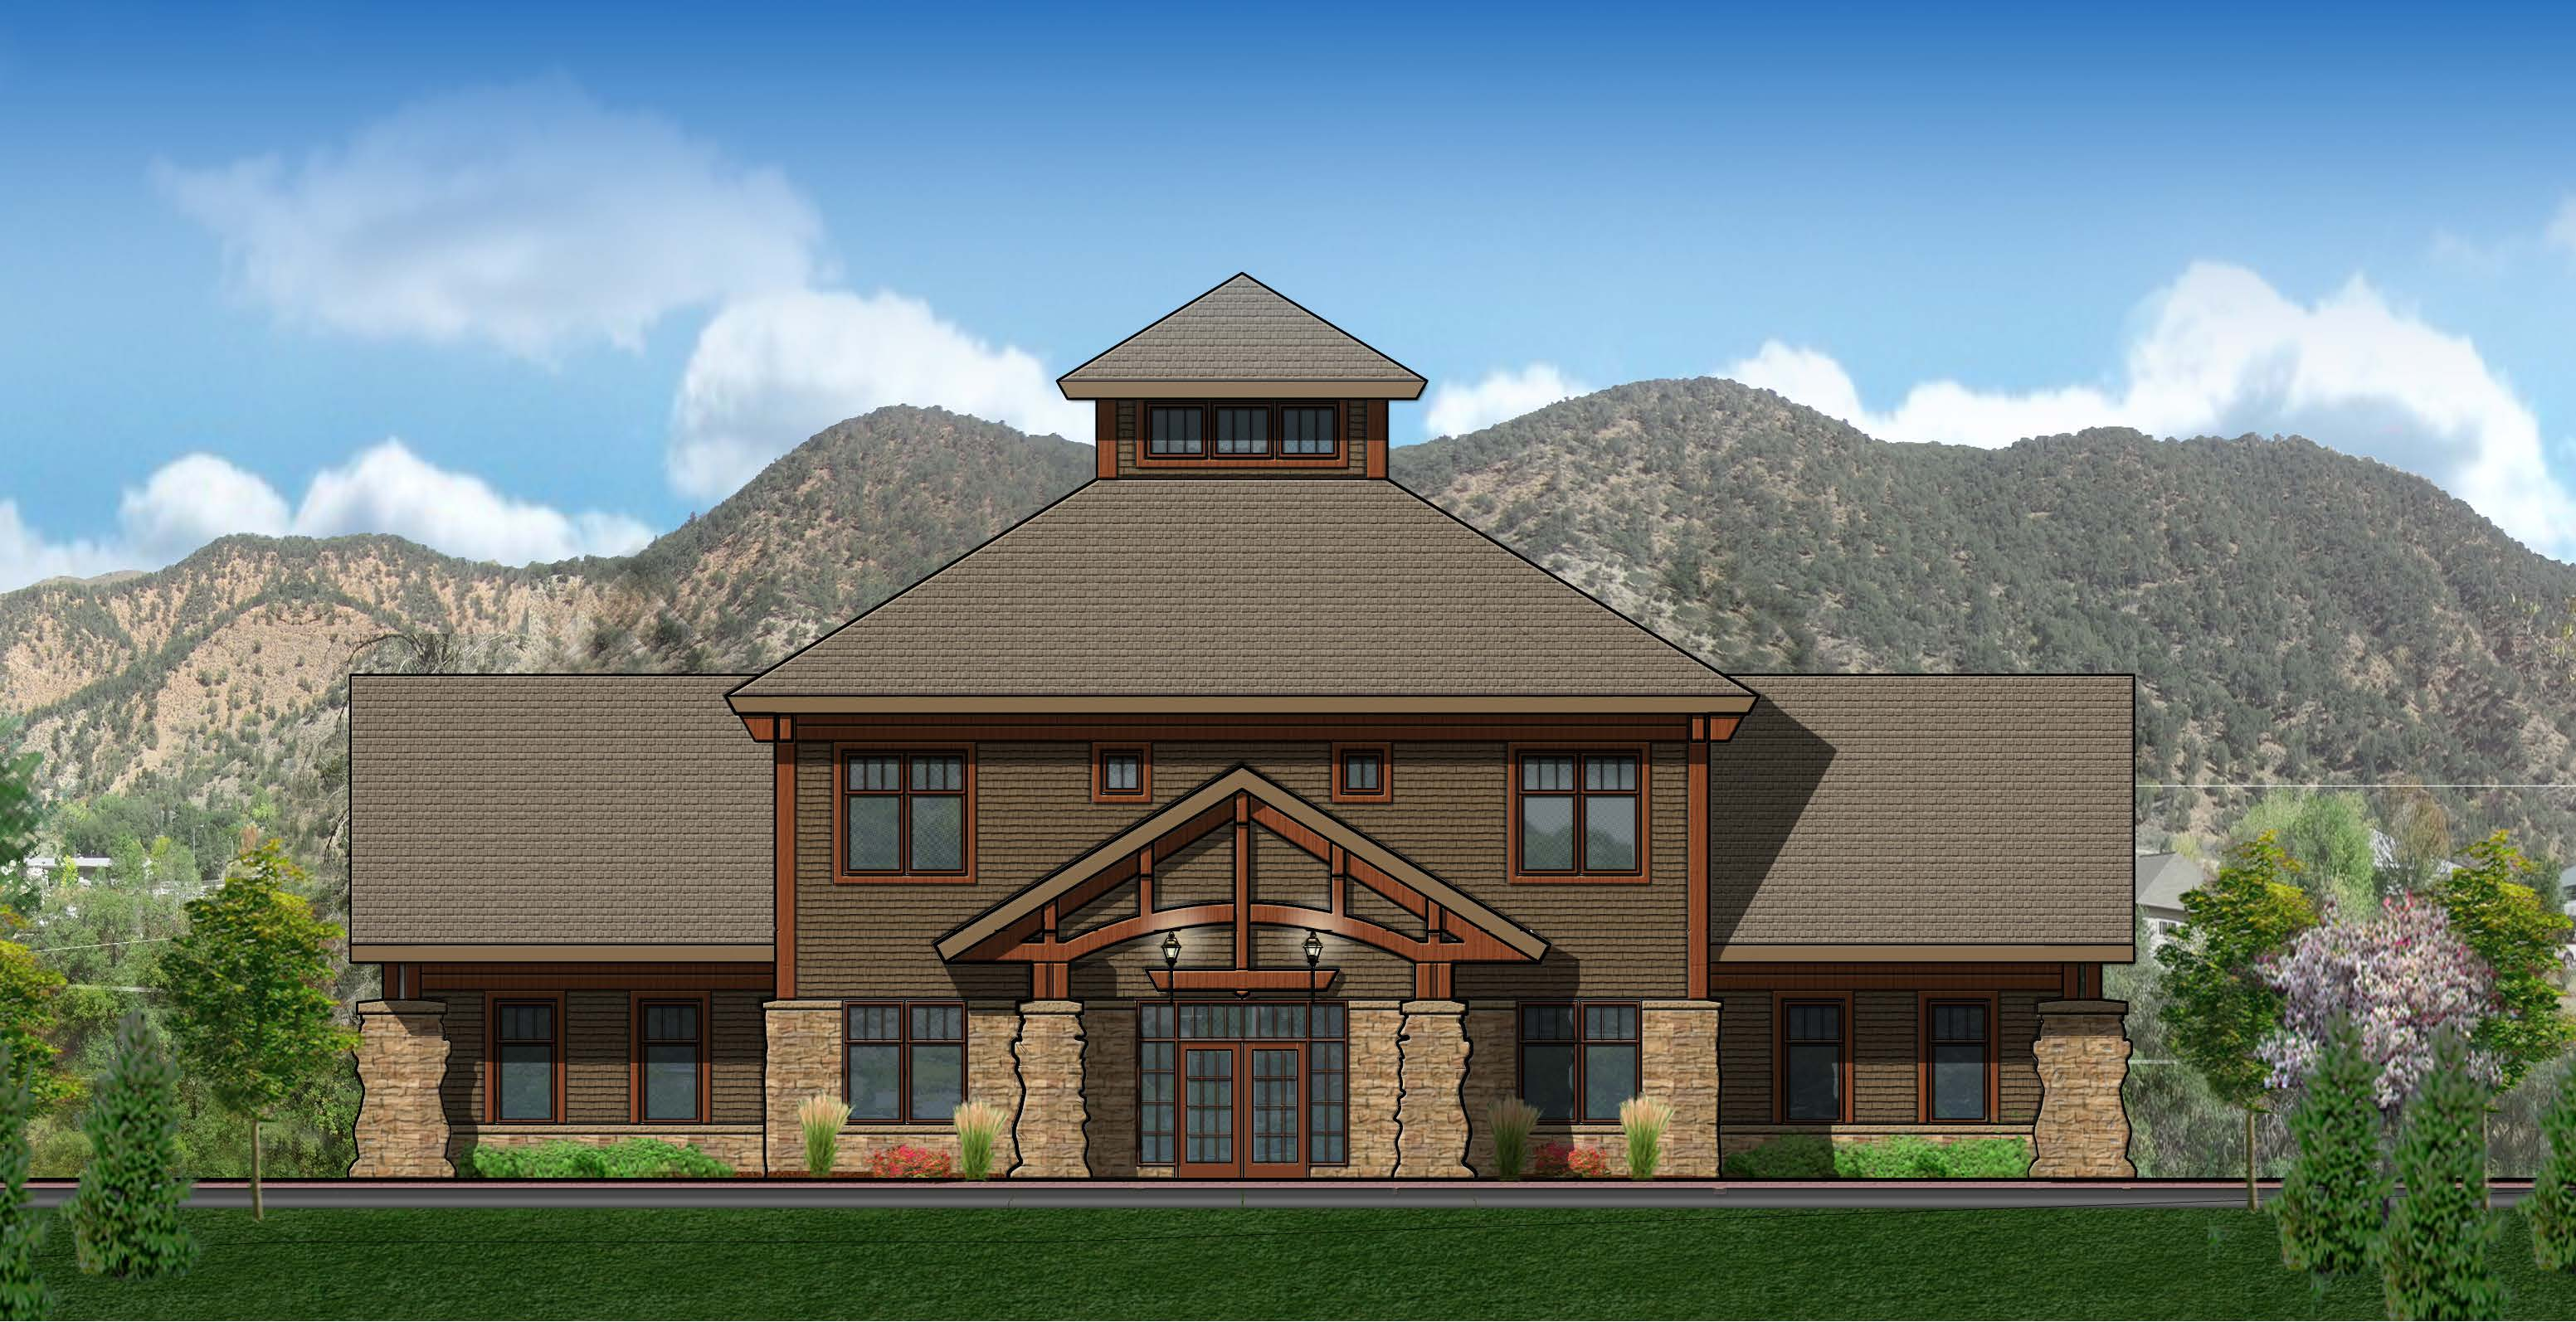 Glenwood Springs Medical Office Building gallery image